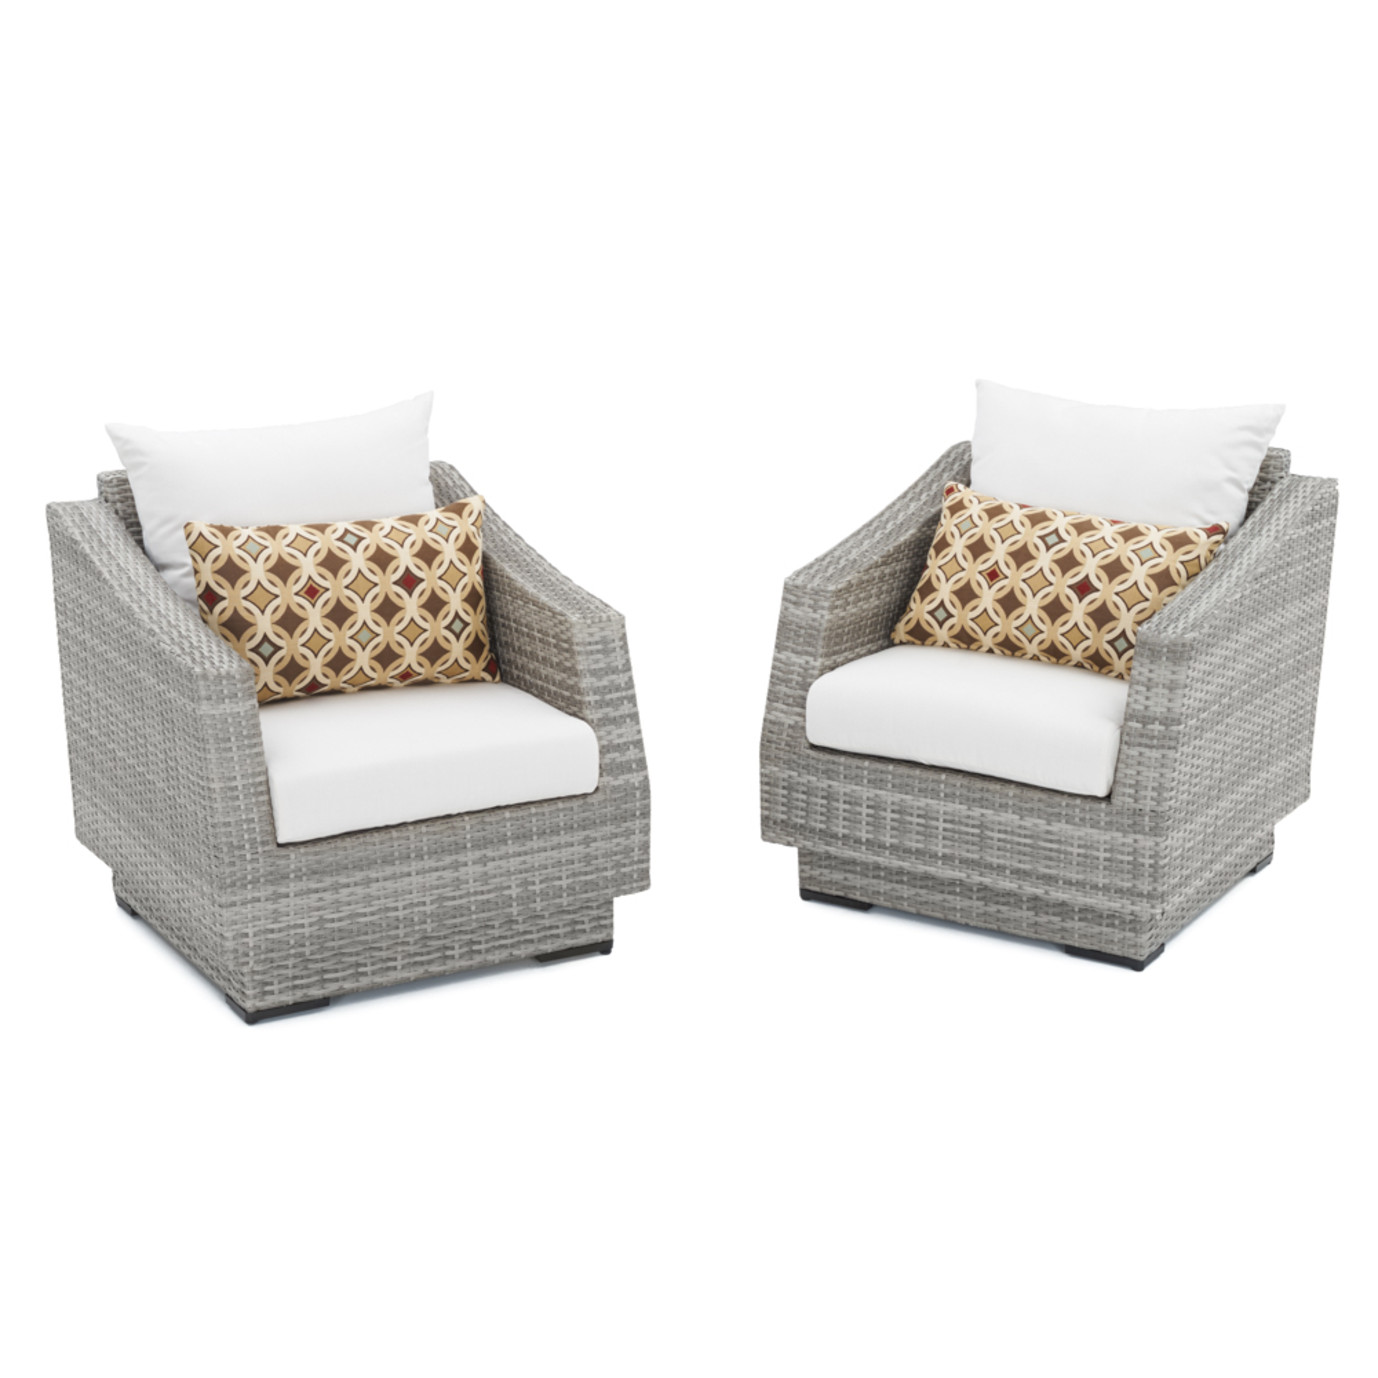 Cannes™ Club Chairs - Moroccan Cream